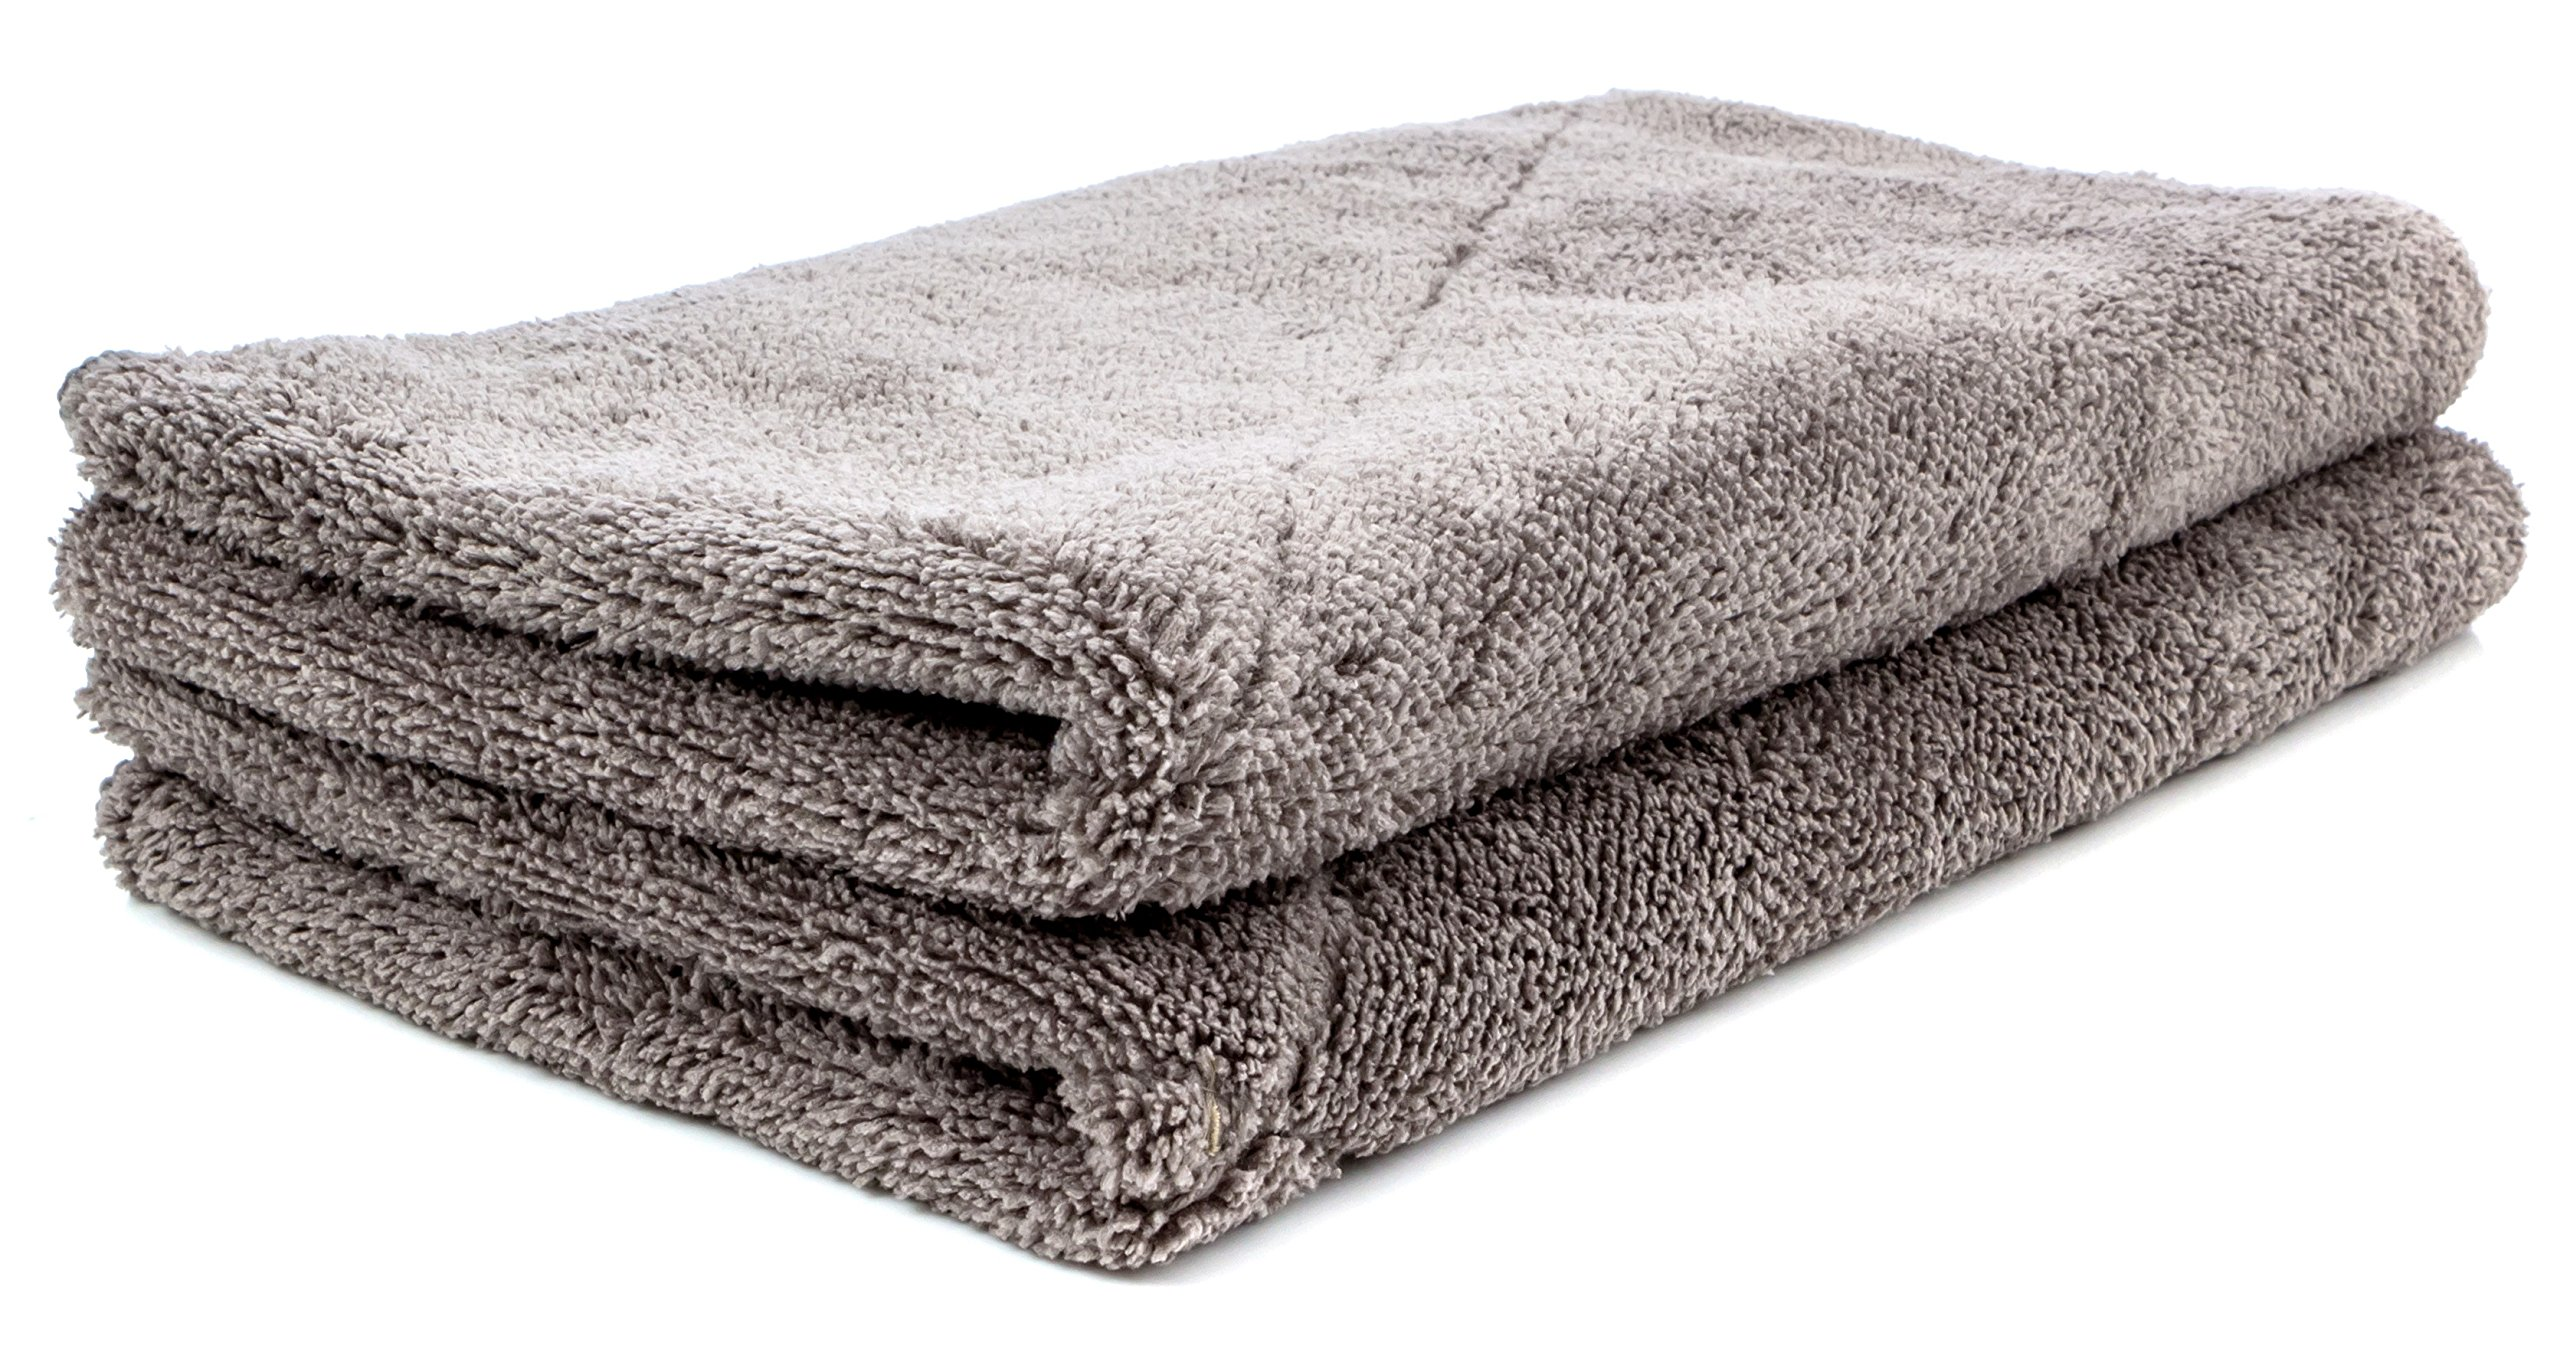 "Dry Rite Super Plush Microfiber Detail Towel- 15""x24"" Premium Professional Grade, Commercial Size- Large Drying, Wax Removal Cloth, 700 GSM- Gray (2 Towels)"